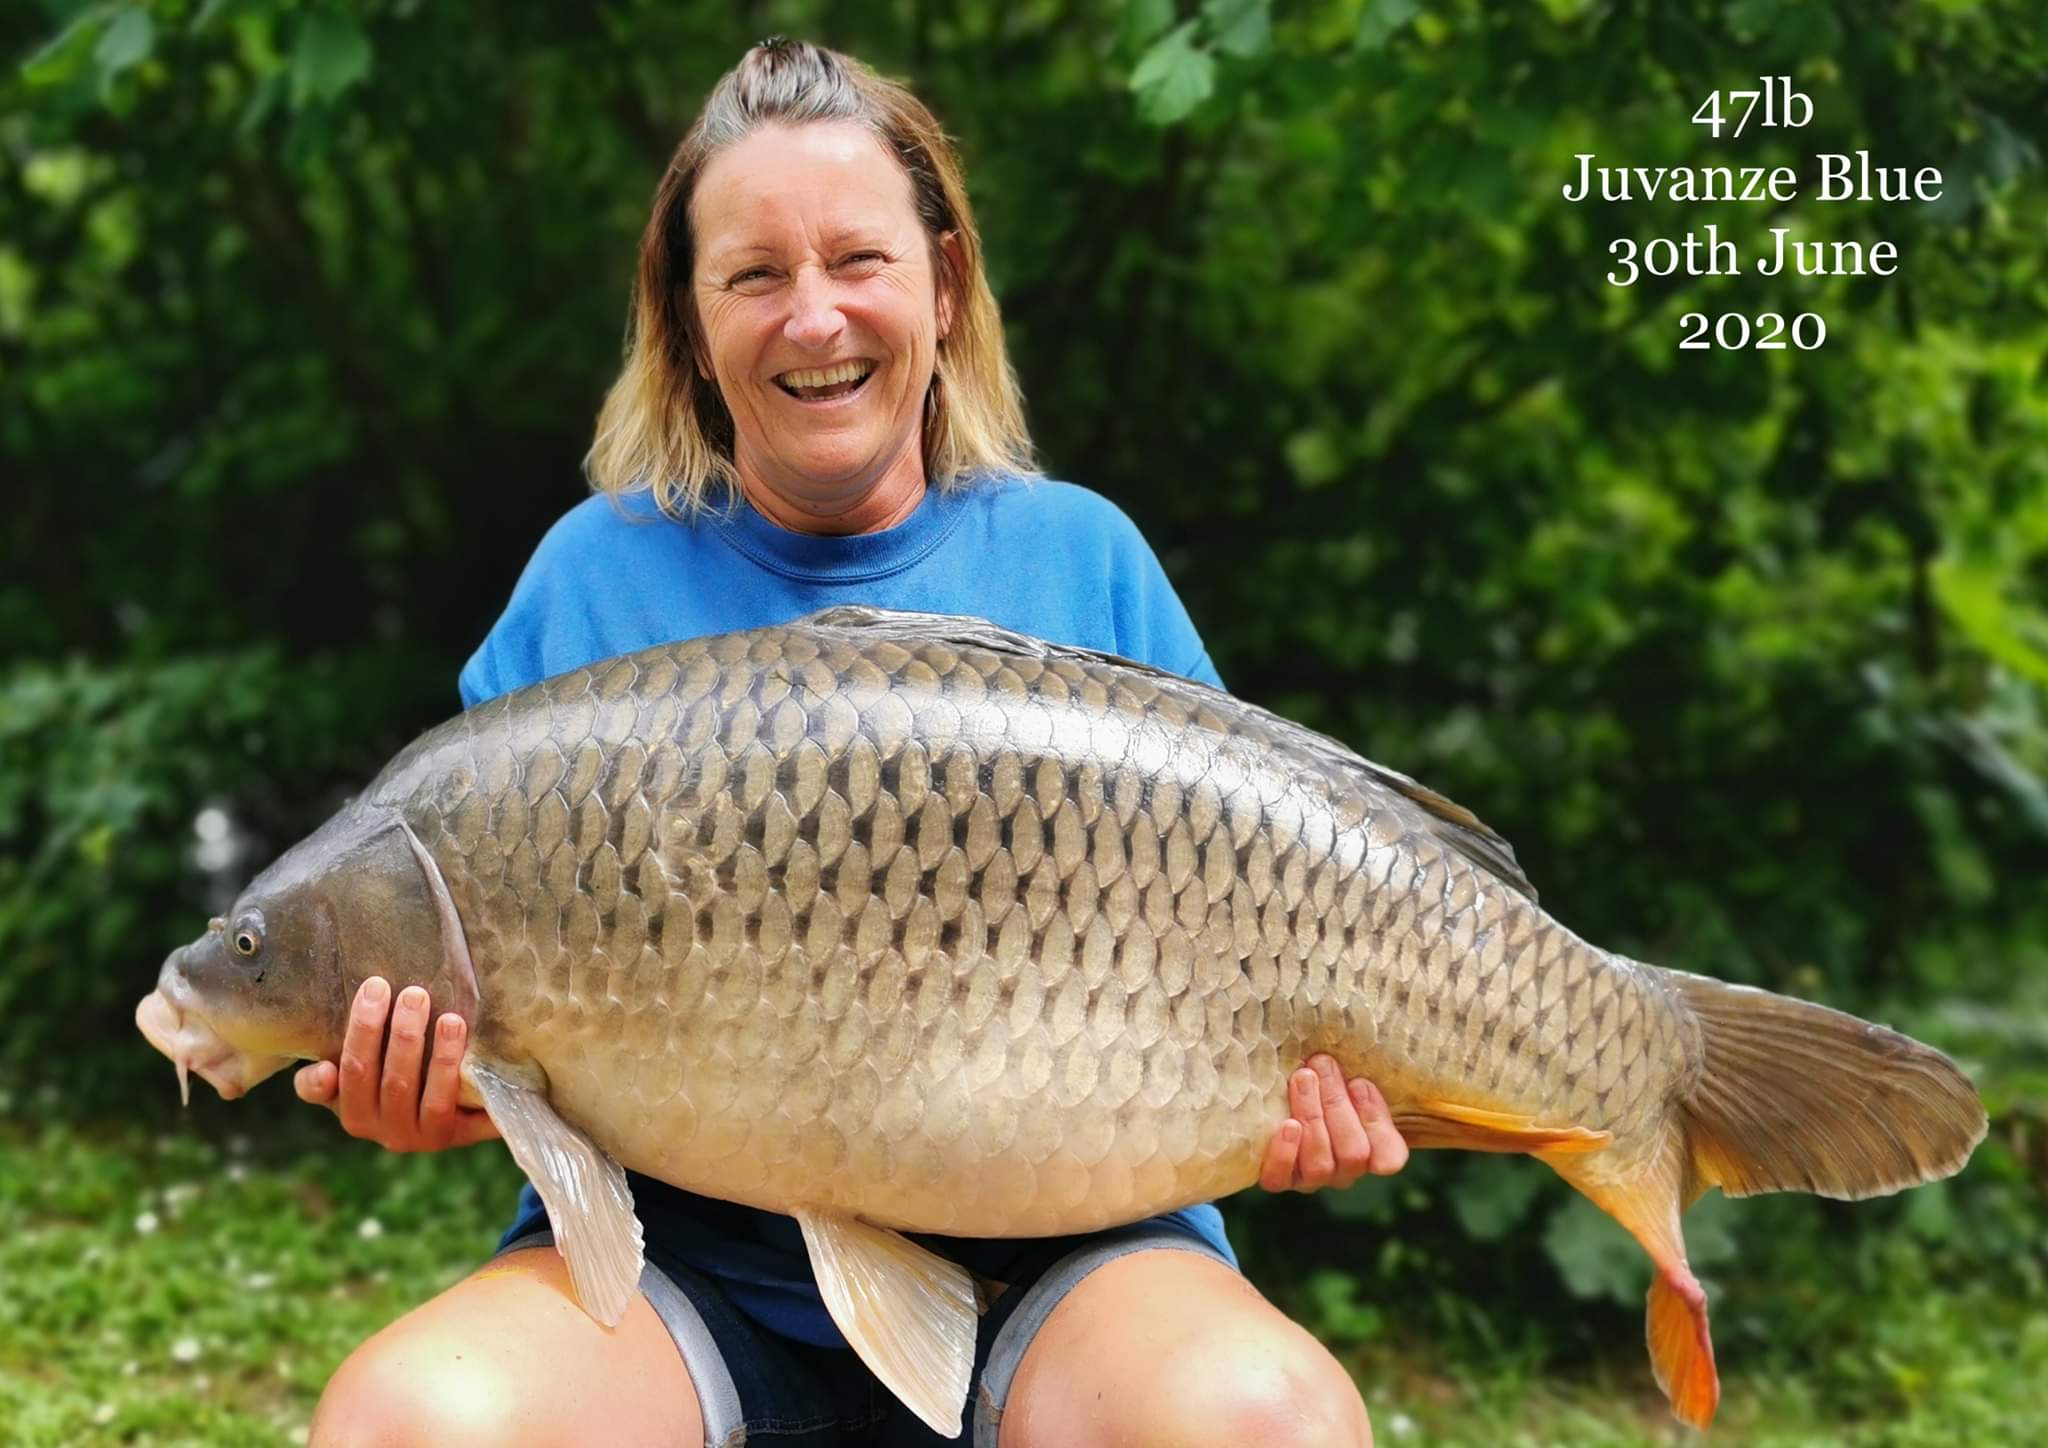 Its not just the guys the girls can catch to using whitetigerfishing products well done.